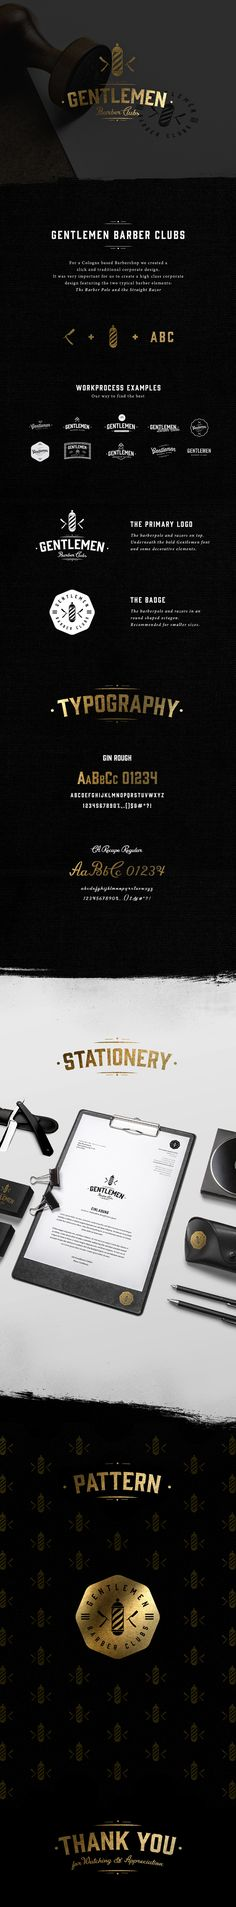 Black and gold branding